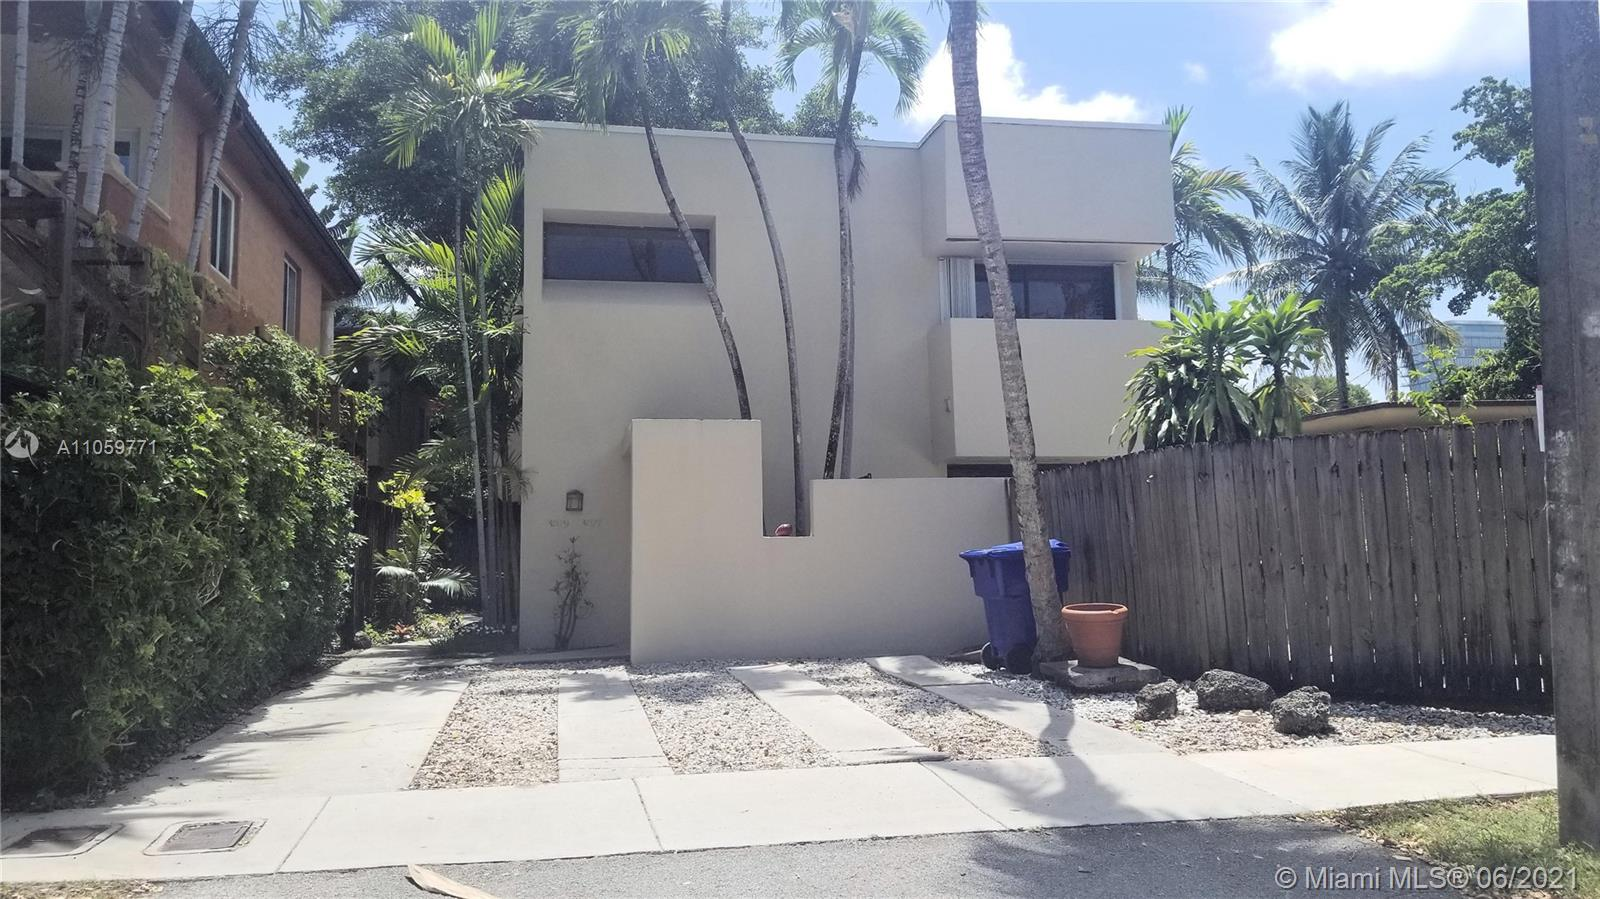 3079  Virginia St #3079 For Sale A11059771, FL